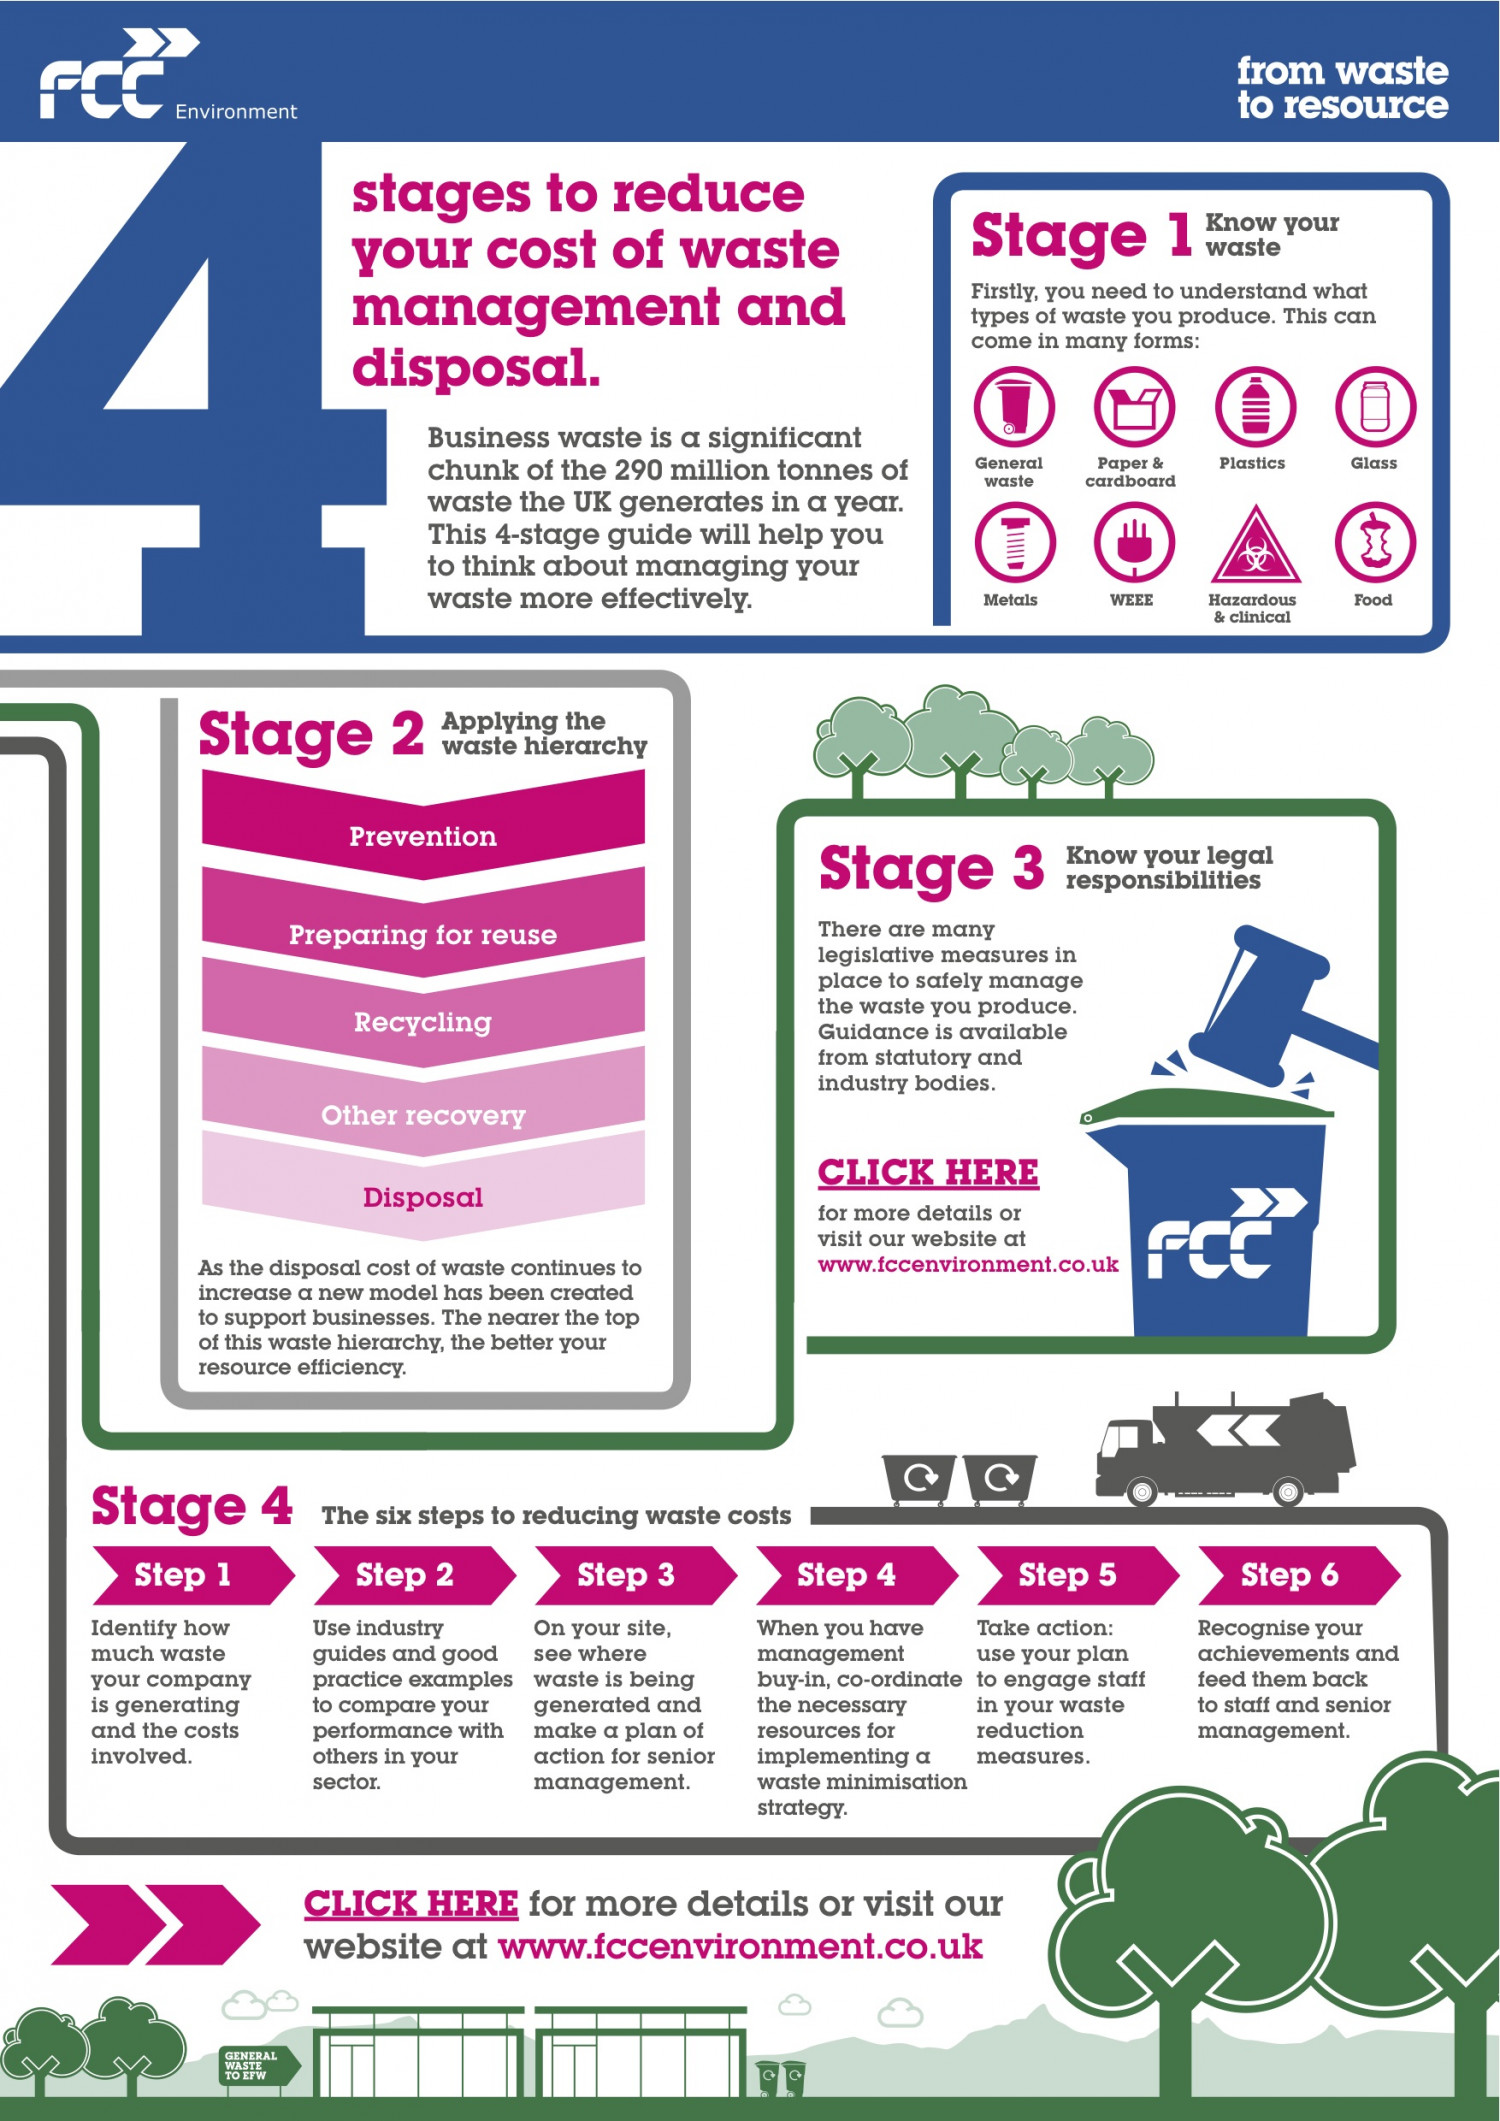 4 Stages to Reduce Your Cost of Waste Management and Disposal Infographic